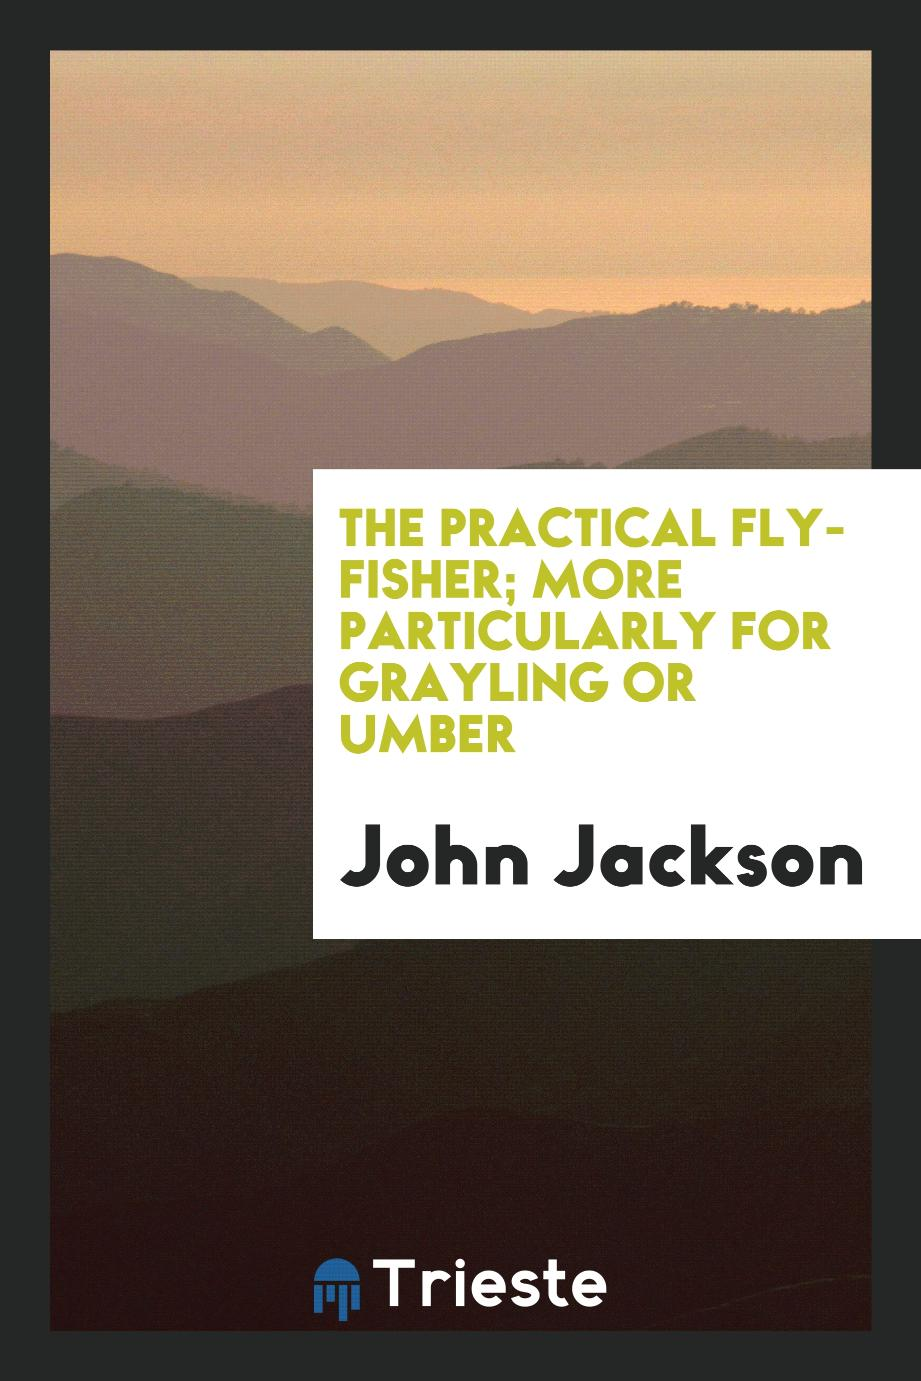 The Practical Fly-fisher; More Particularly for Grayling Or Umber